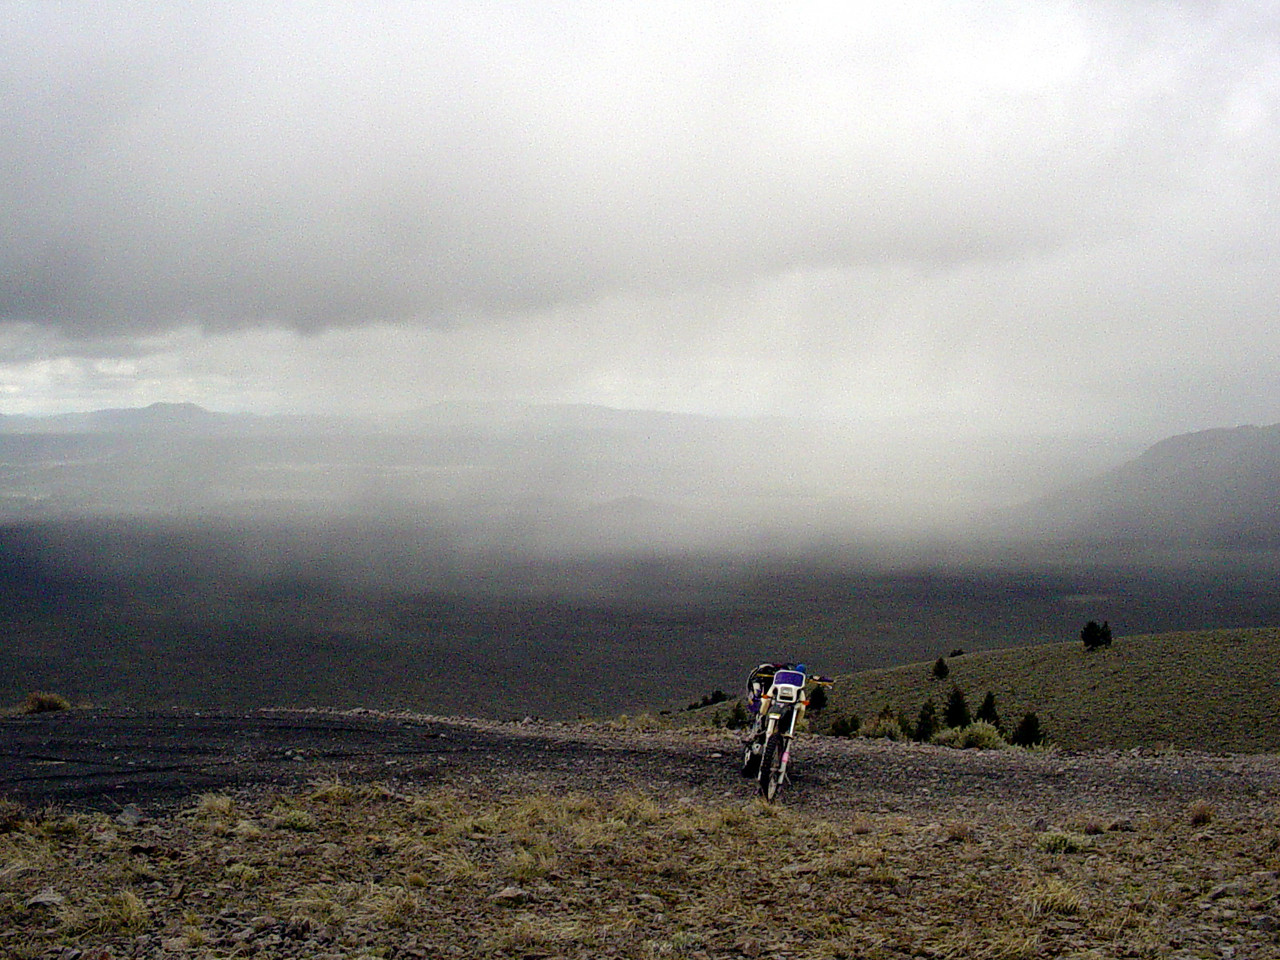 "<font size=""+1"">A view of the rain.  Looking west over the East Fort Rock Riding area... </font>"